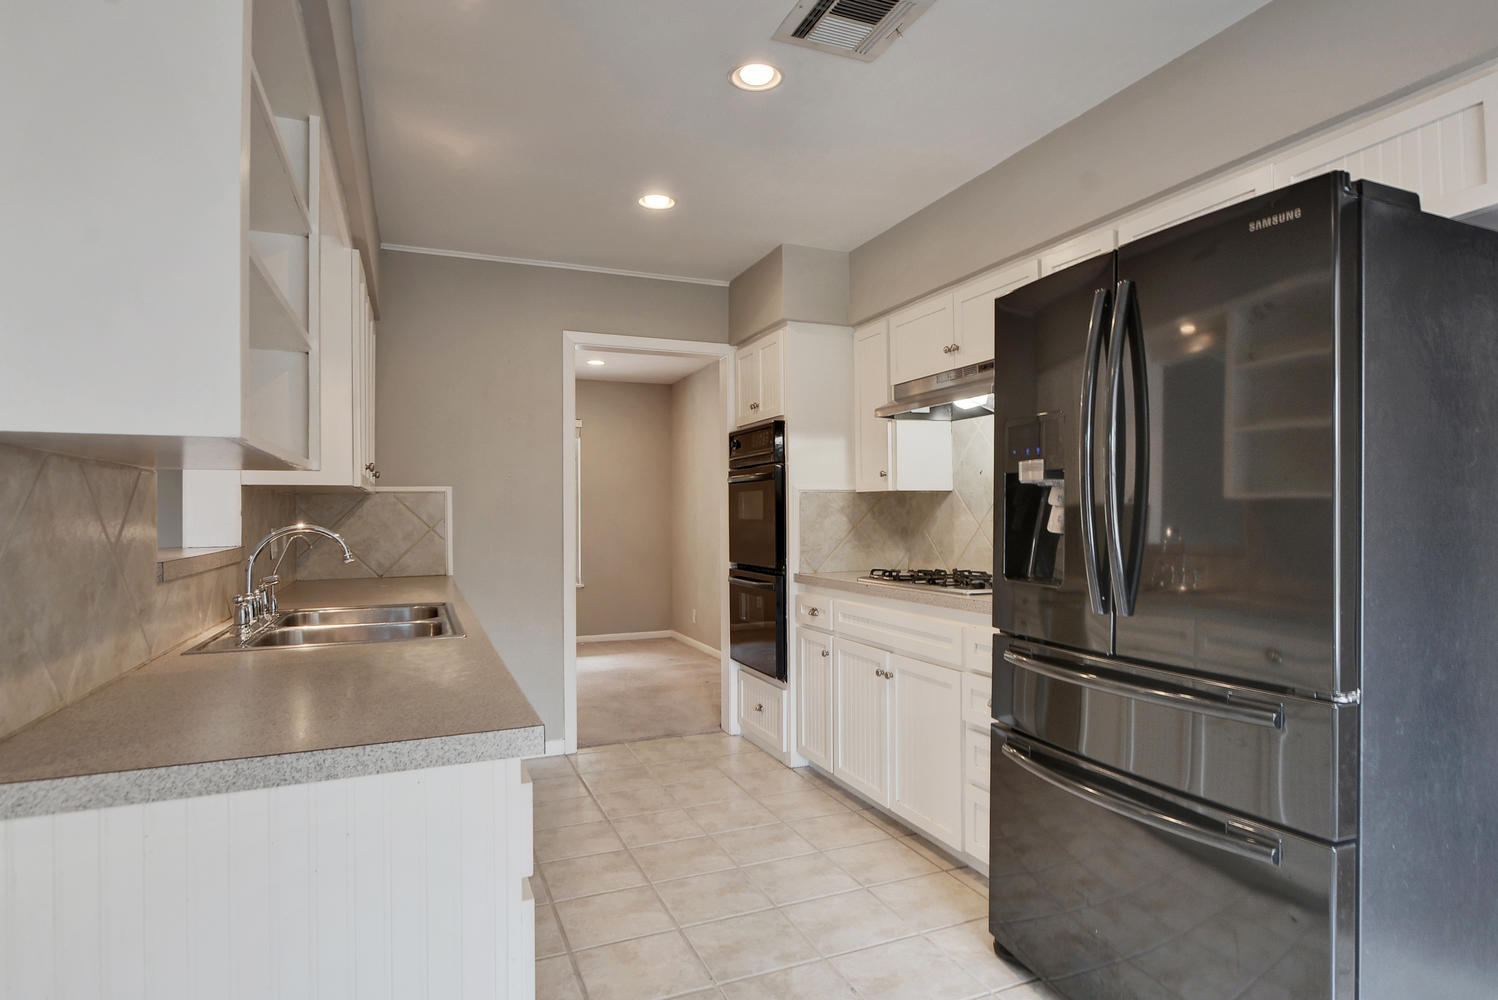 1802 Westmoor Dr-large-022-28-Kitchen and Breakfast 005-1499x1000-72dpi.jpg